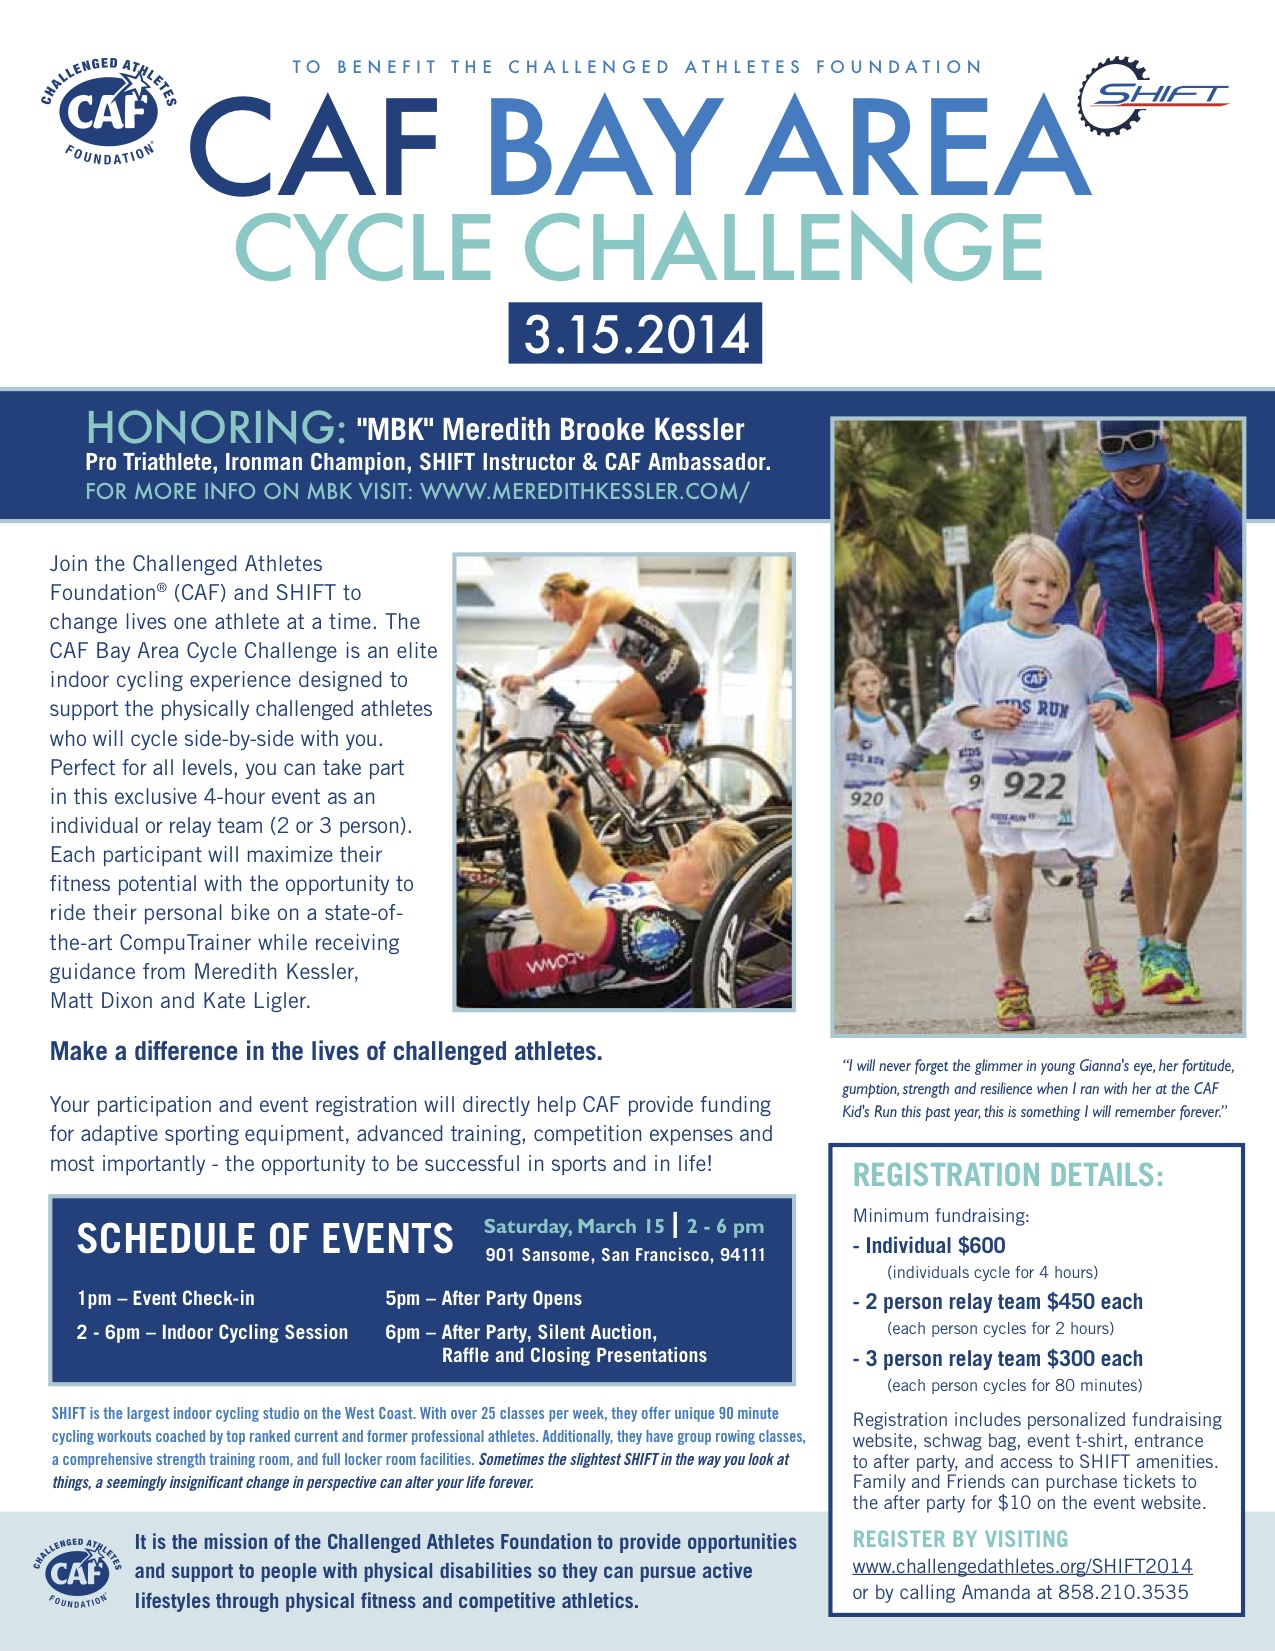 Meredith Kessler Challenged Athletes Foundation Flyer 2014 Bay Area Cycling Challenge